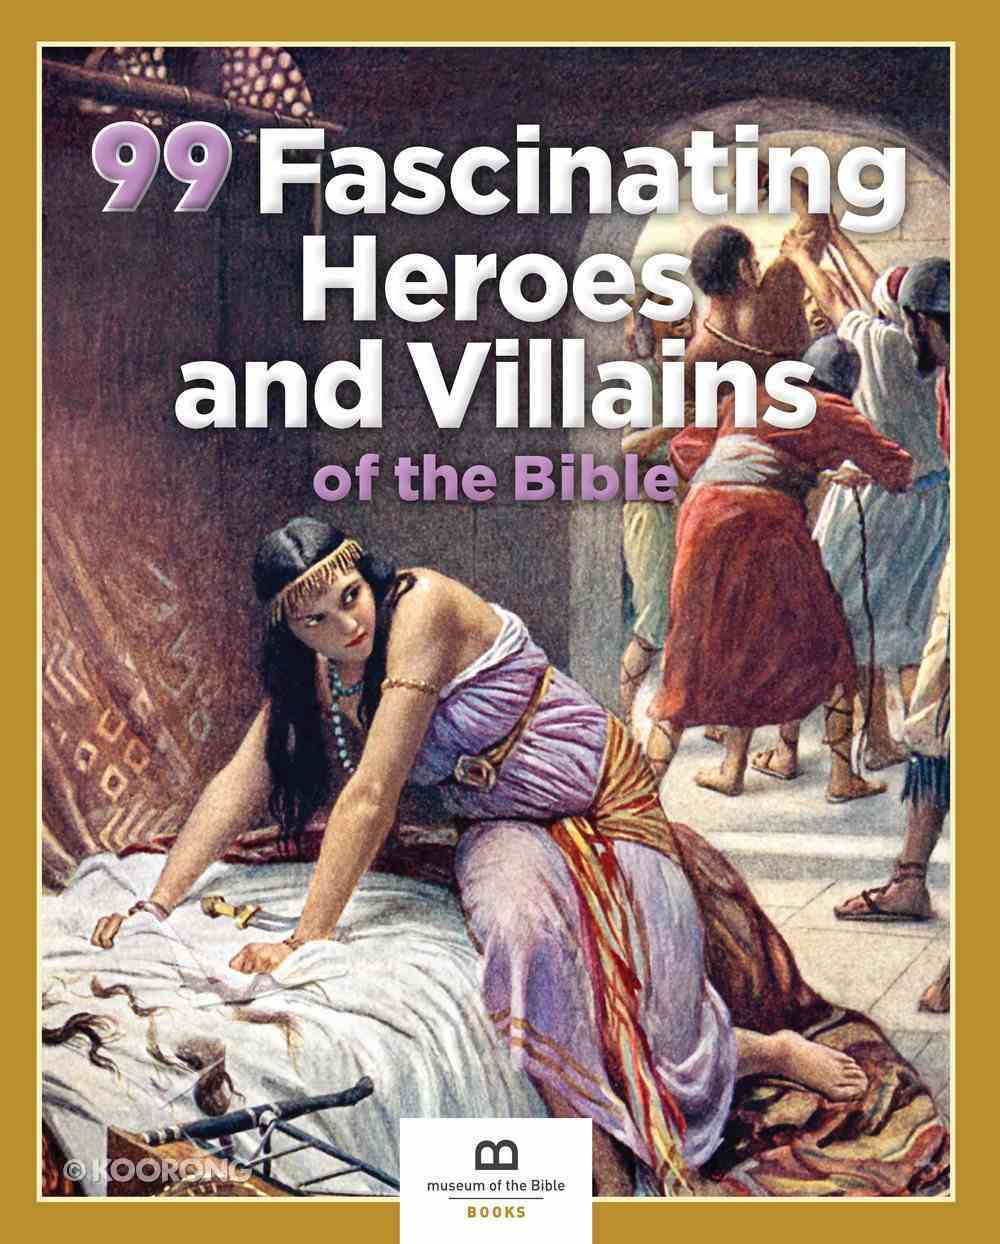 99 Fascinating Heroes and Villains of the Bible (99 Series, Museum Of The Bible) Paperback